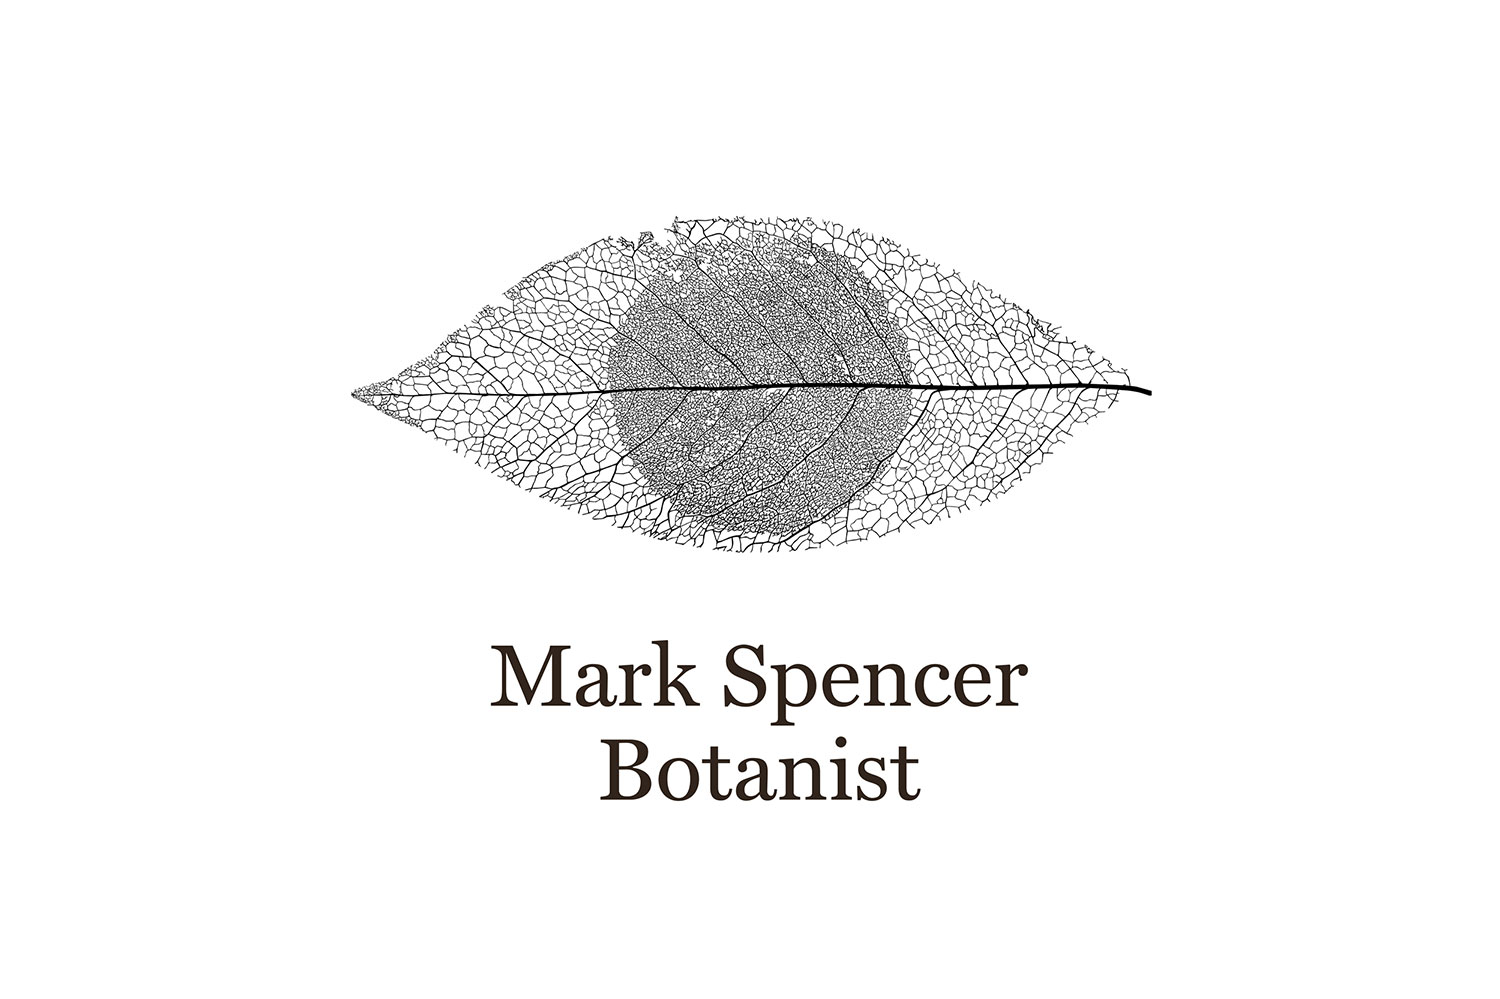 Mark Spencer forensic botanist logo